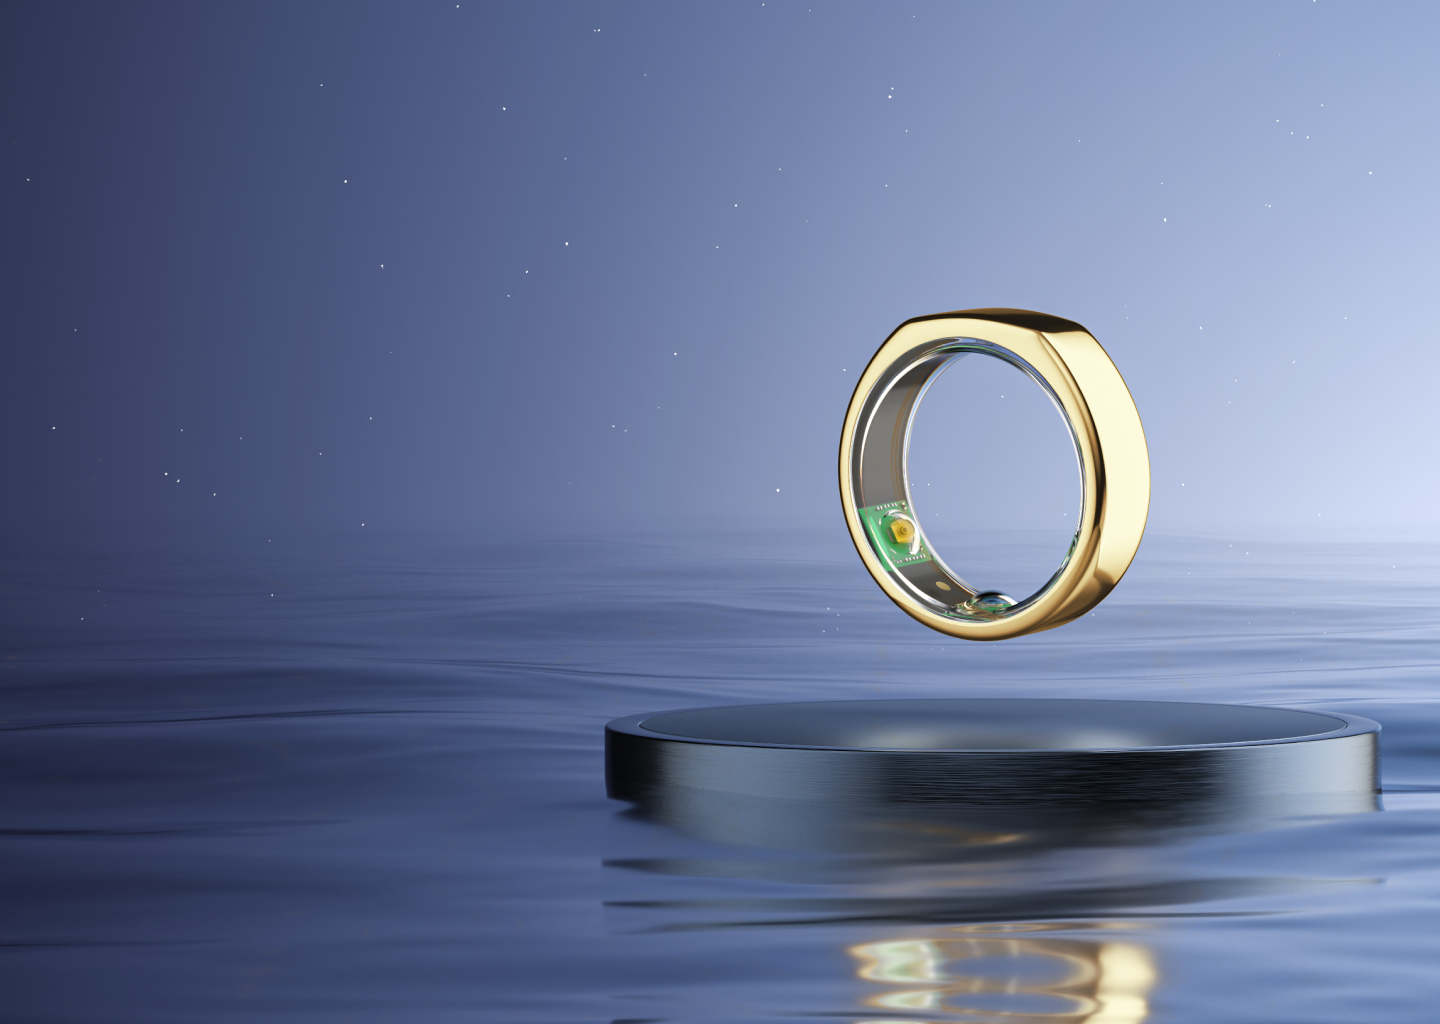 Gold Oura Ring floating among a starry sky, with a deep blue ocean below.